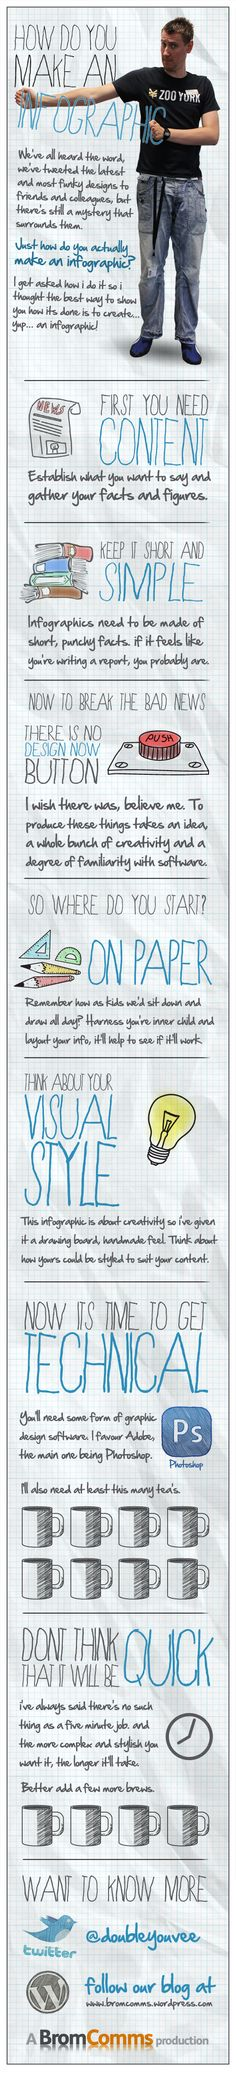 How Do You Make an Infographic?   #HowTo #infographic   ➤ Image credit: http://bromcomms.wordpress.com